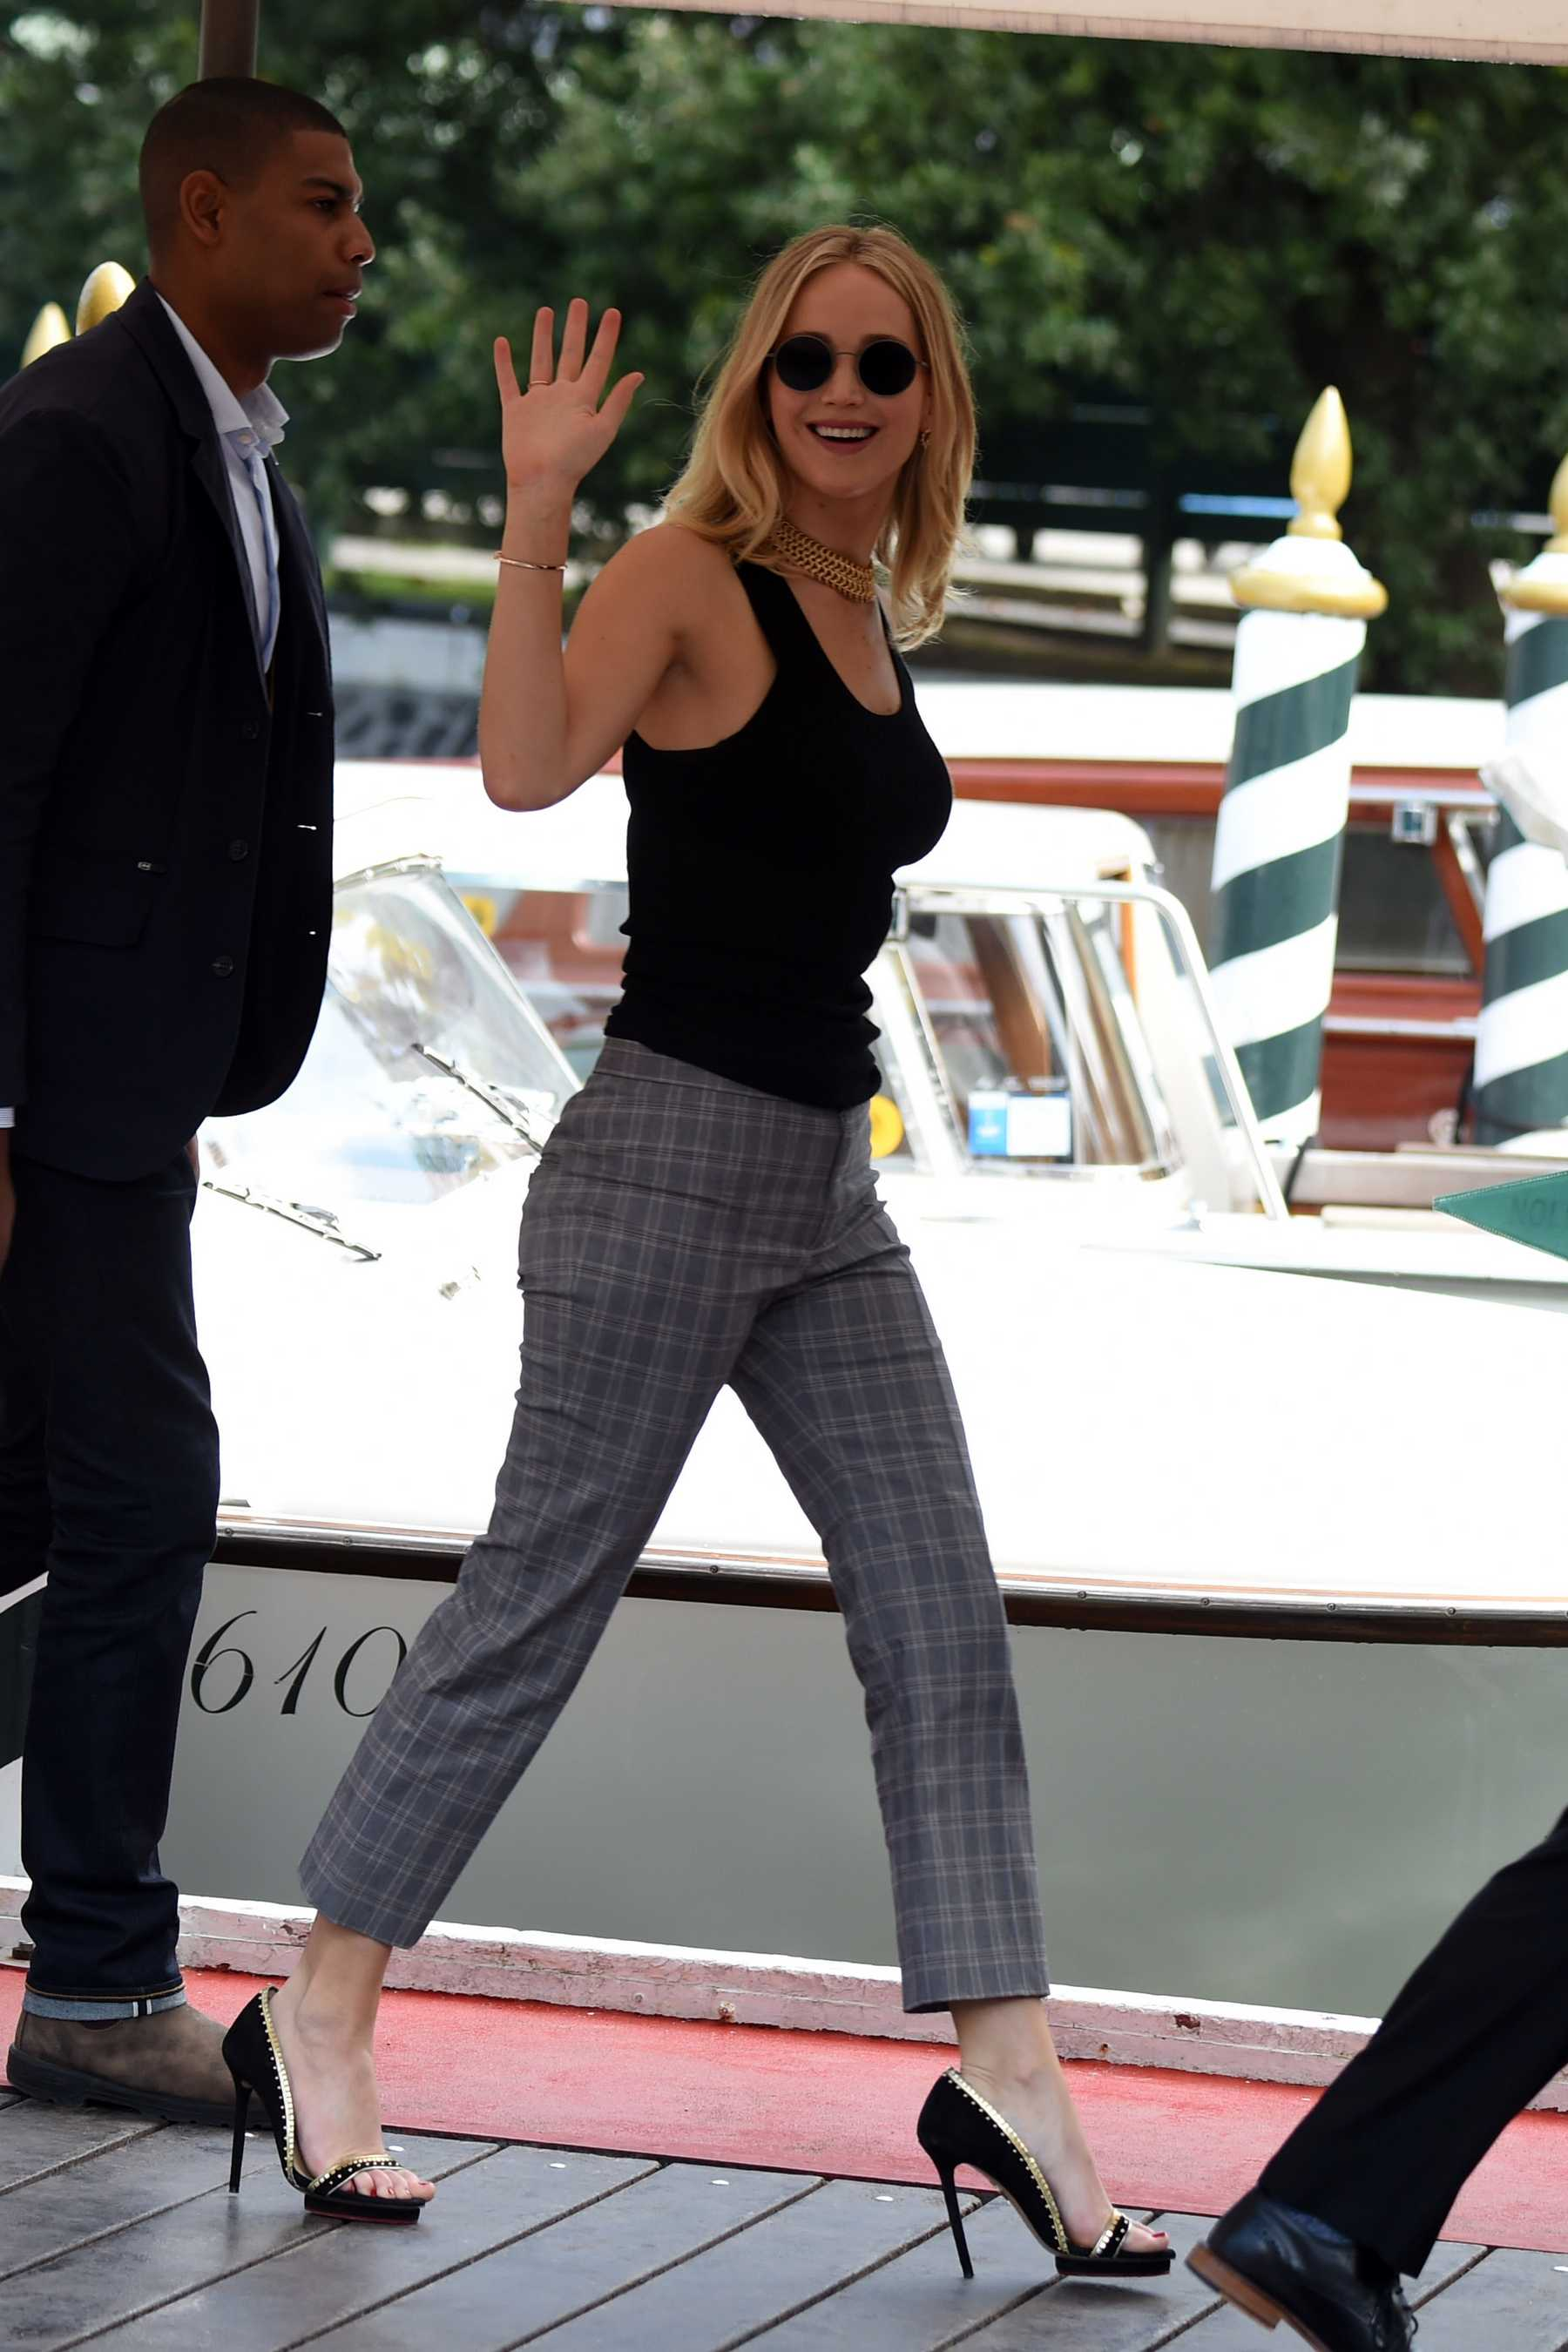 http://jenniferlawrencedaily.com/gallery/albums/userpics/10001/Jennifer_Lawrence_-_Arrives_at_Excelsior_Hotel_during_the_74th_Venice_Film_Festival_in_Italy_on_September_5-01.jpg